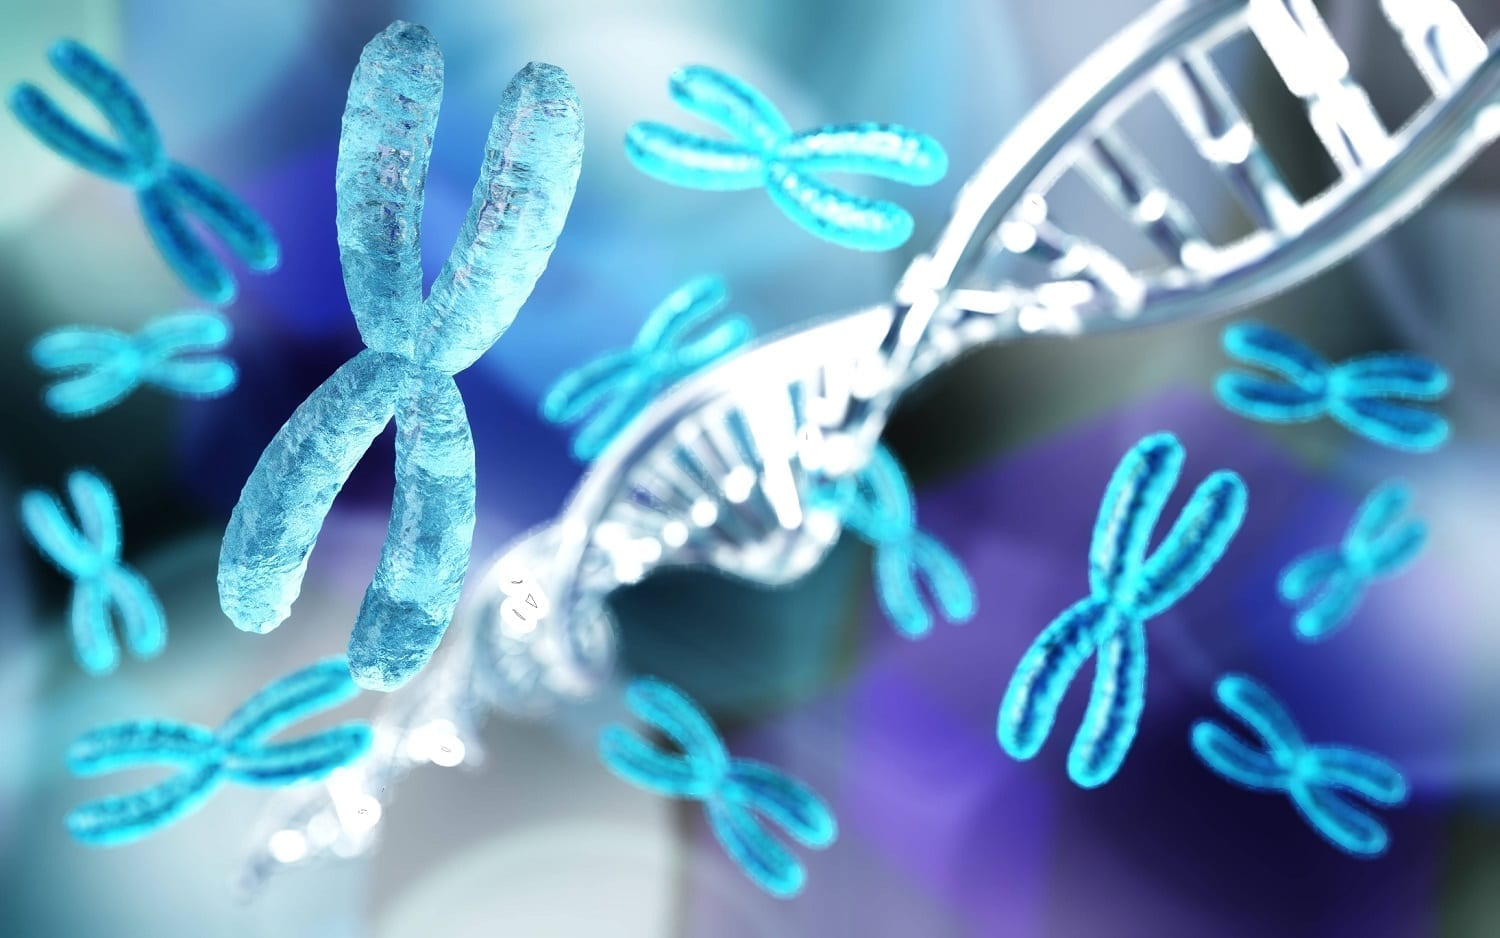 Chromosomes and DNA spirals: ID 141572715 © Stanislav Rykunov | Dreamstime.com